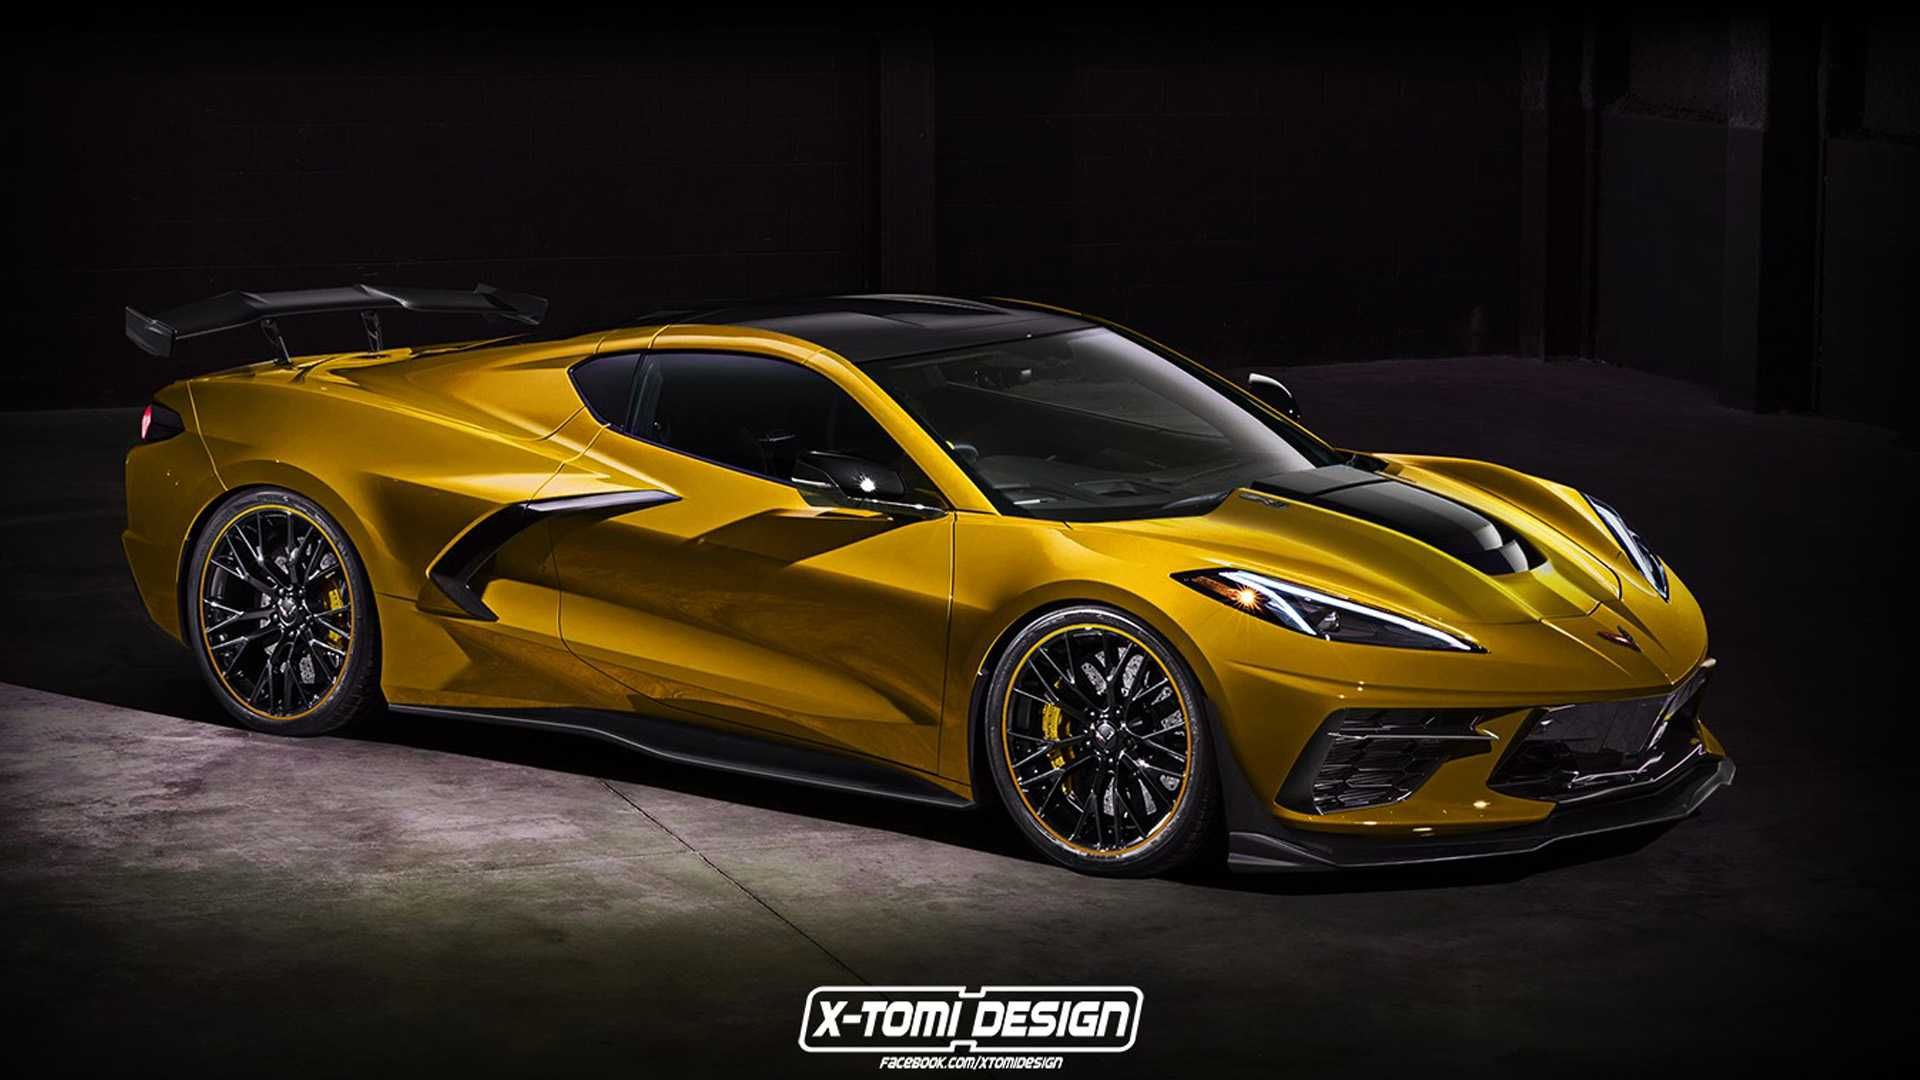 2020 Chevrolet Corvette Zr1 Allowed For You To My Website In